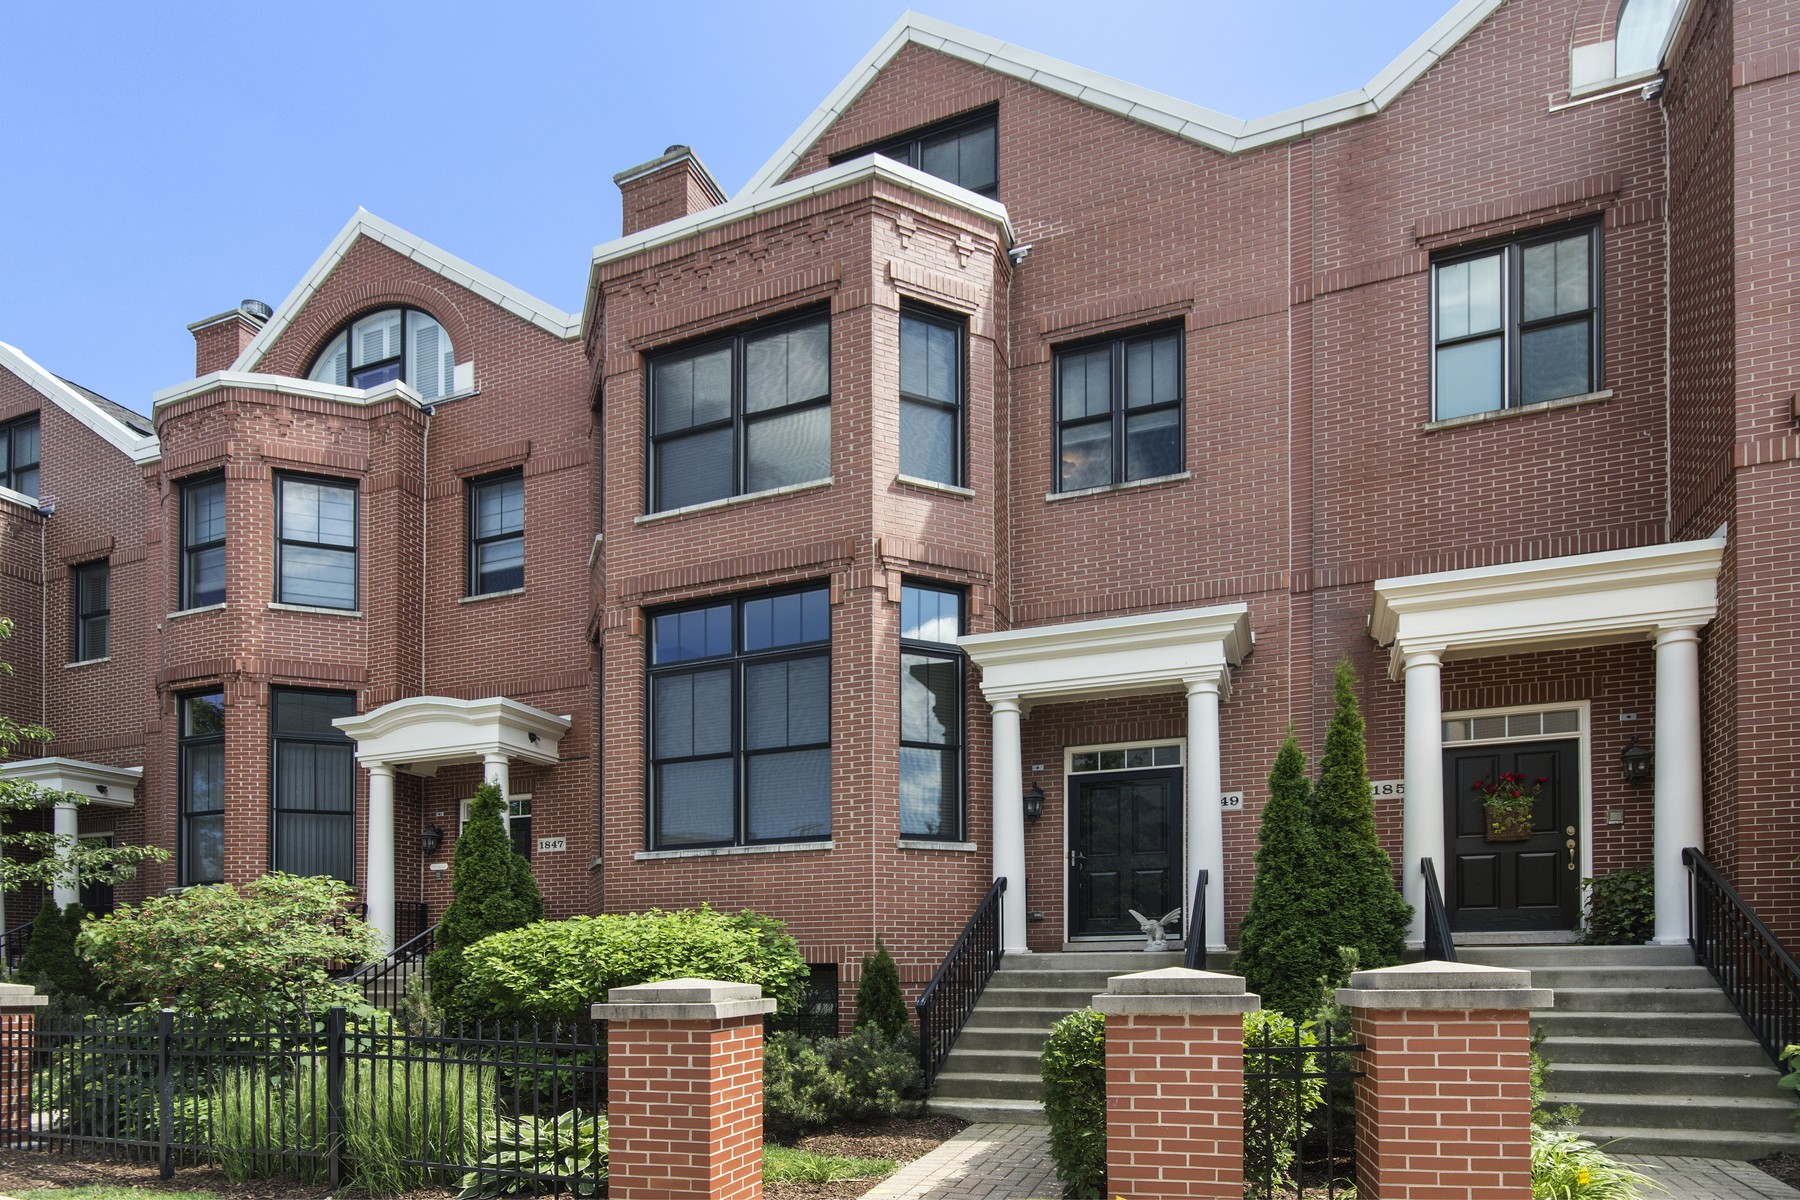 Villetta a schiera per Vendita alle ore Stately Brick Town Home With Many Custom Features 1849 Admiral Court Glenview, Illinois, 60026 Stati Uniti